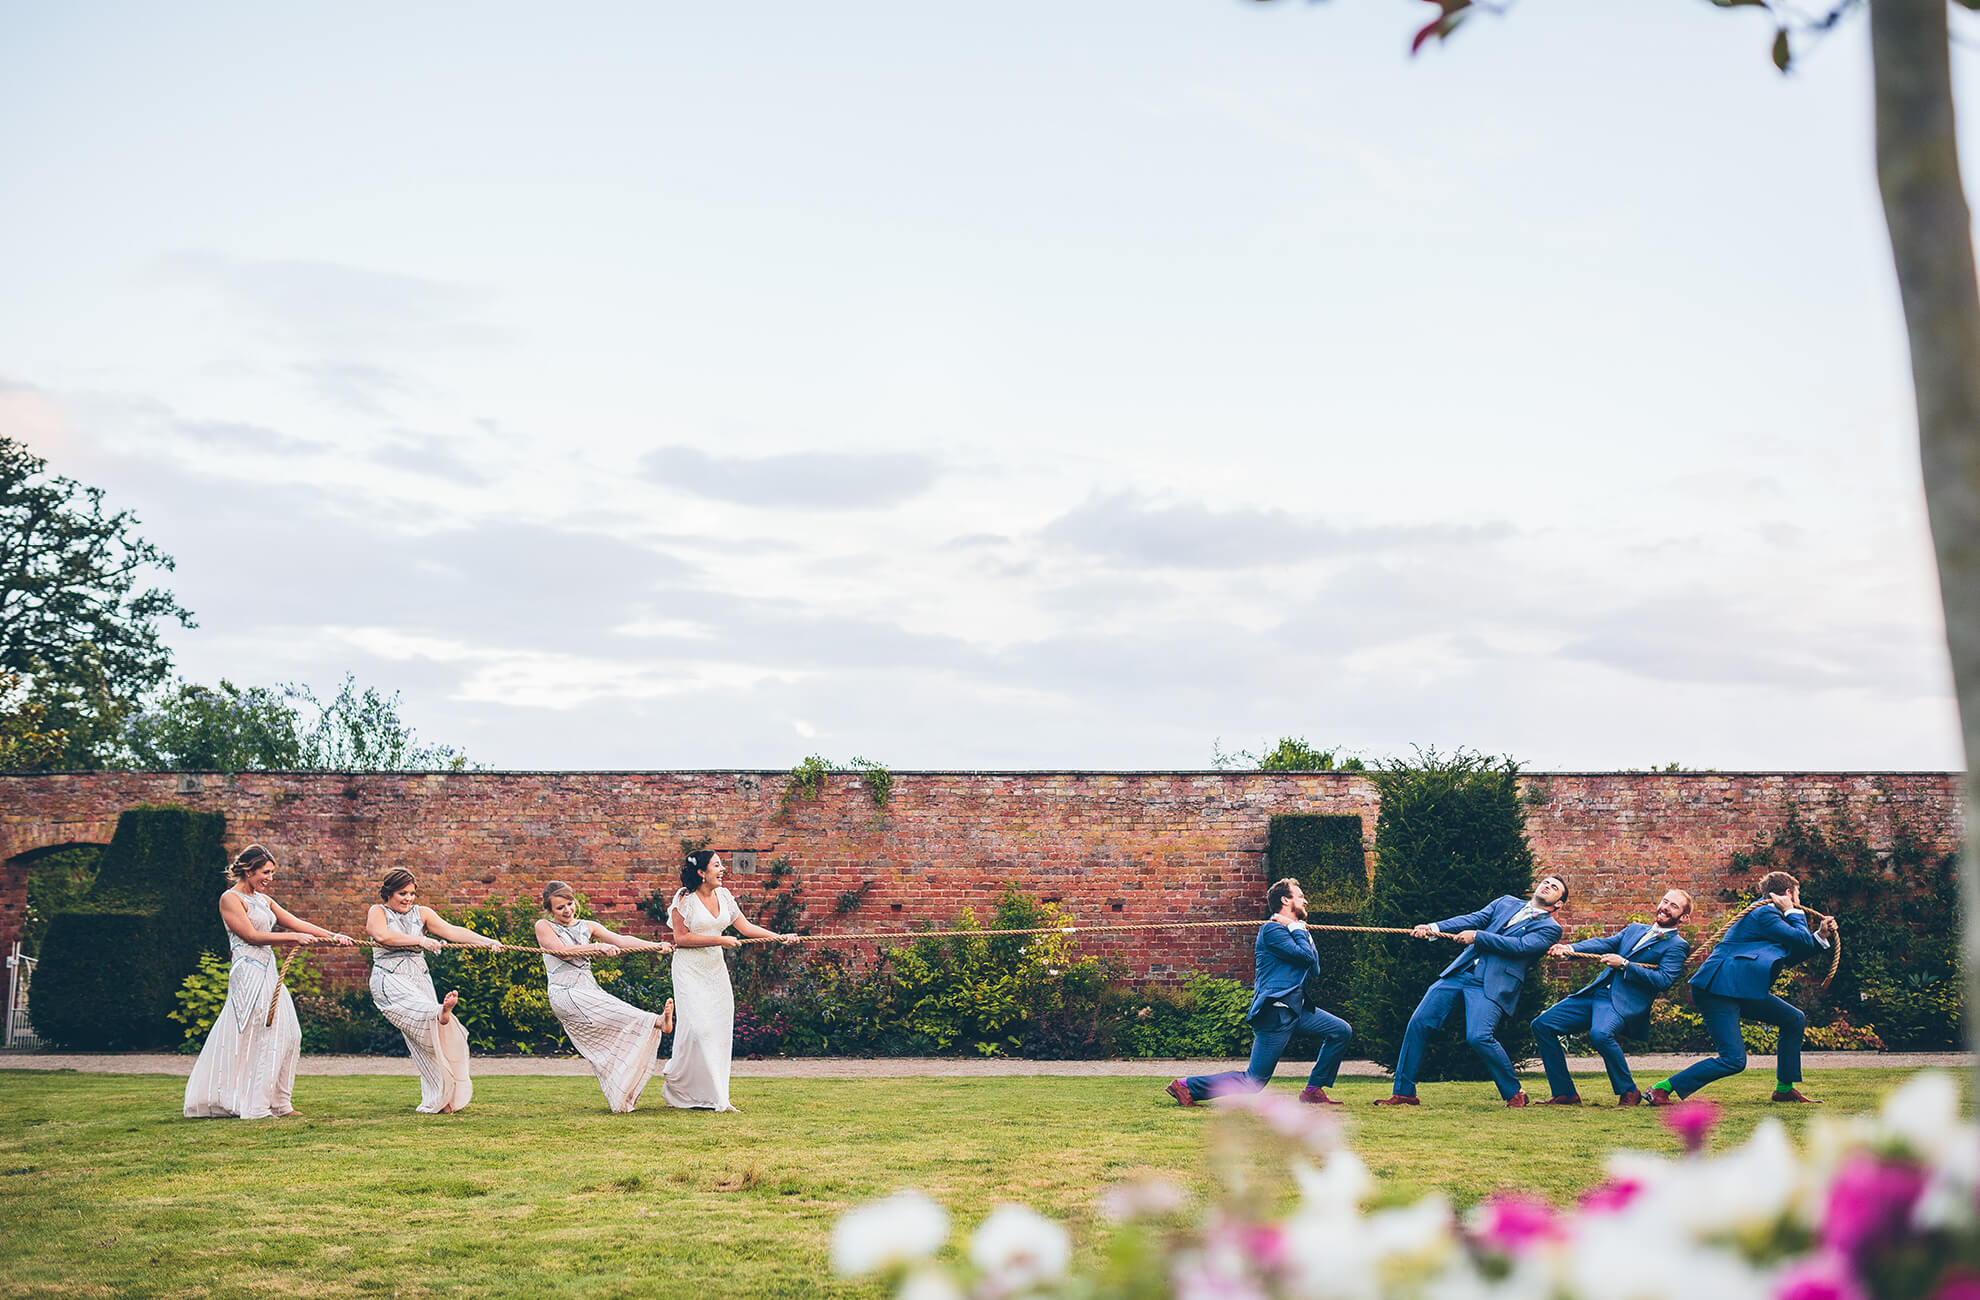 The gardens at the Cheshire wedding venue are a great space for bridesmaids and ushers to enjoy a wedding game of tug of war